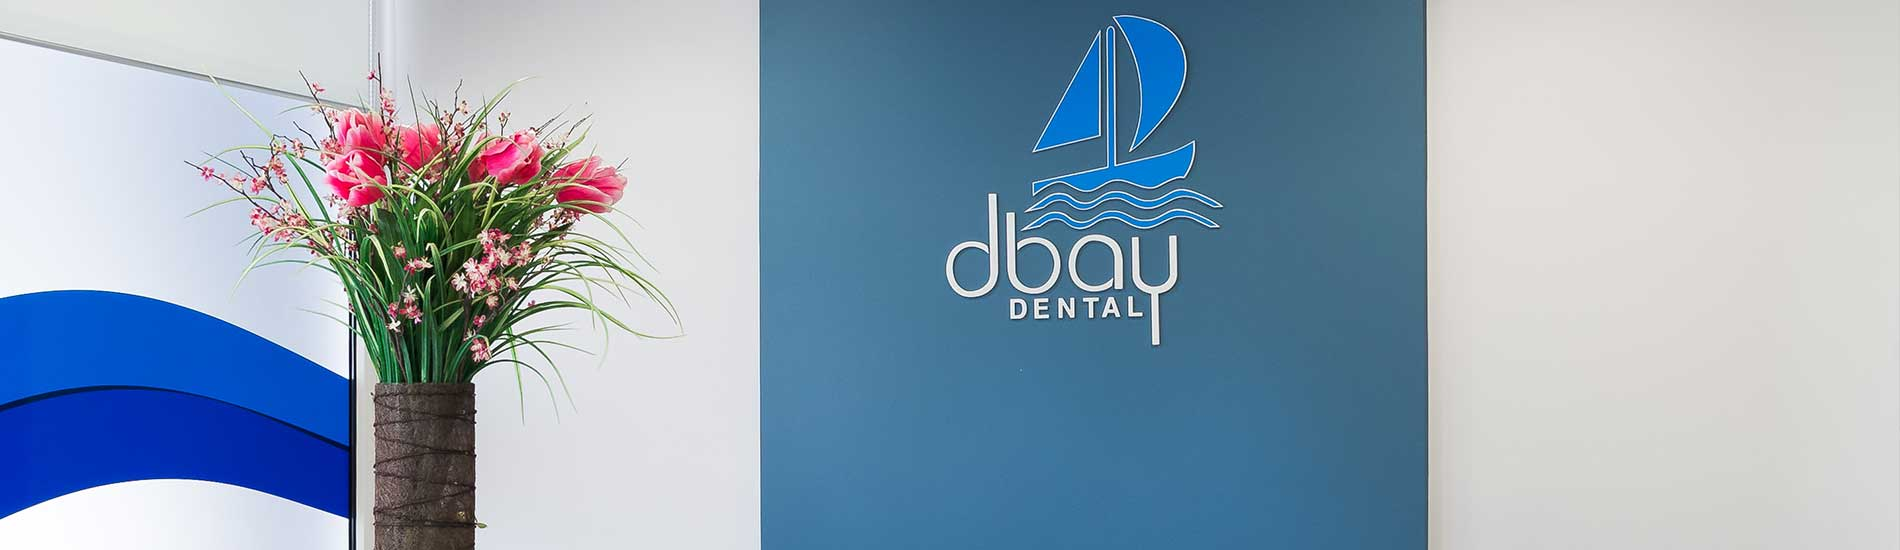 Photo of DBay Dental Reception Area